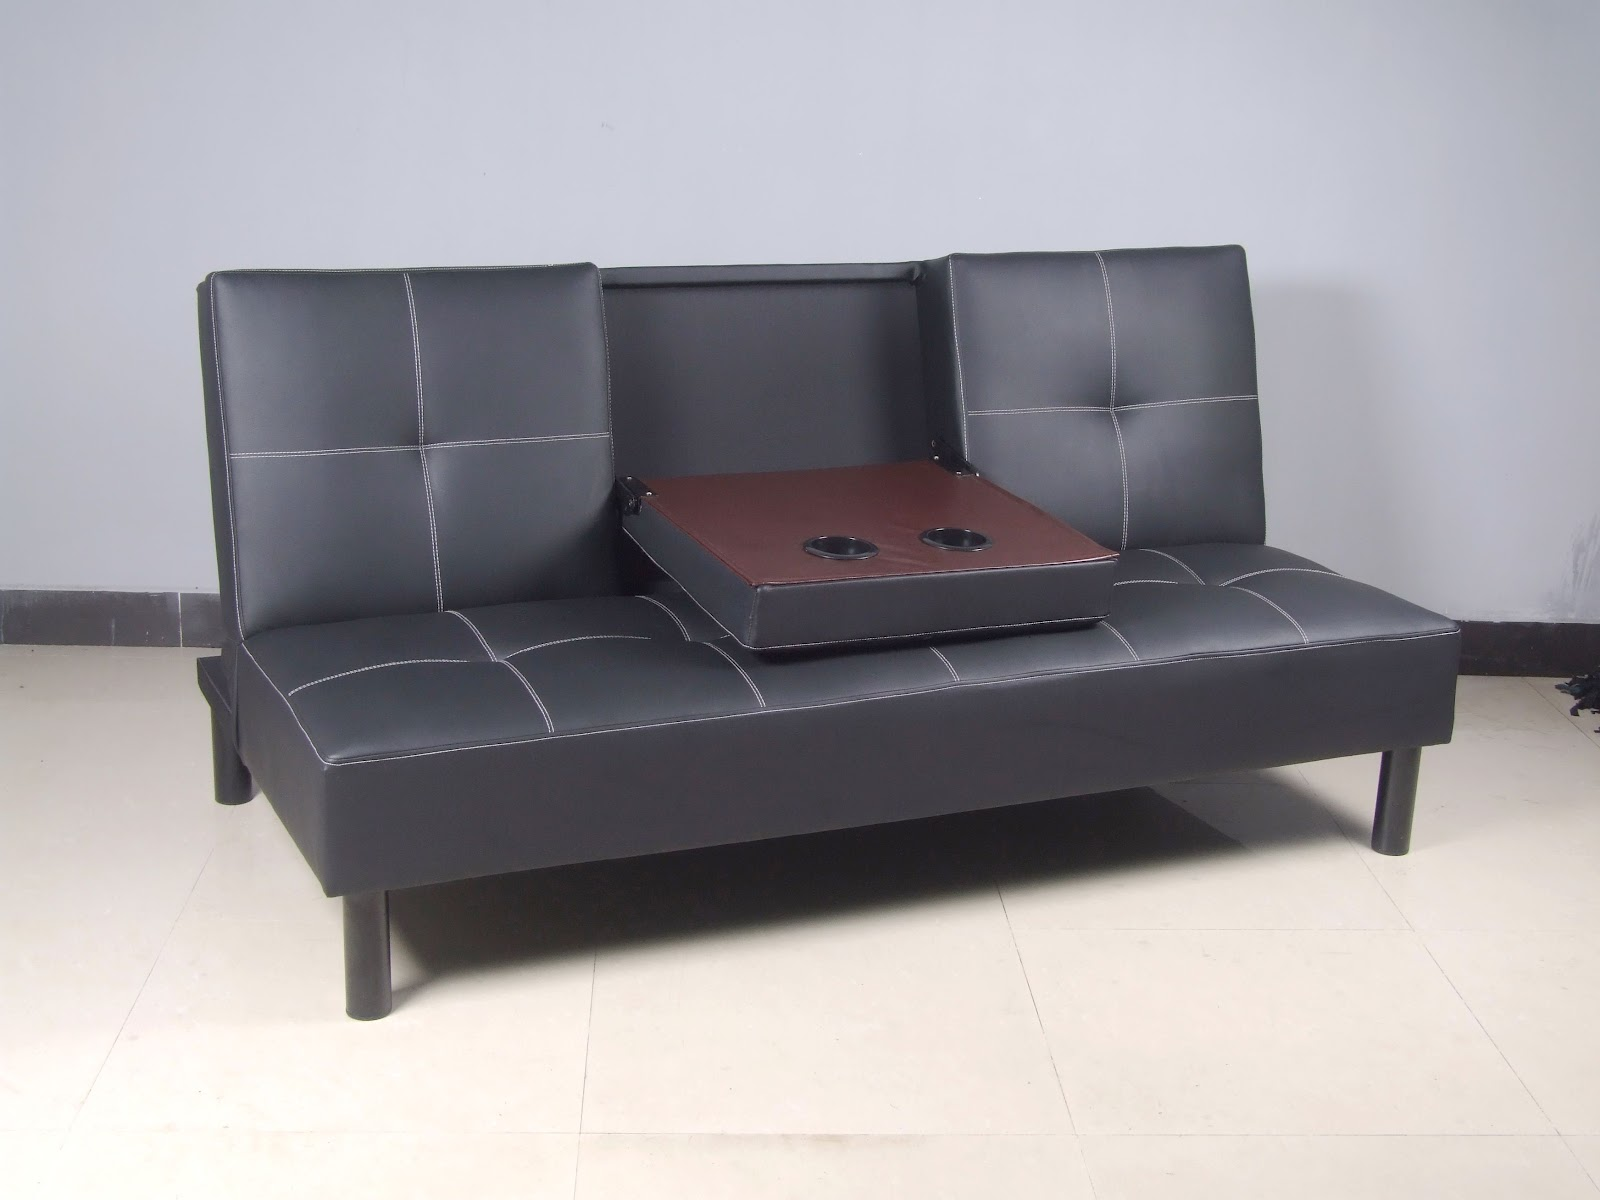 American Leather Comfort Sleeper | Moheda Sofa Bed | Modern Sleeper Sofa